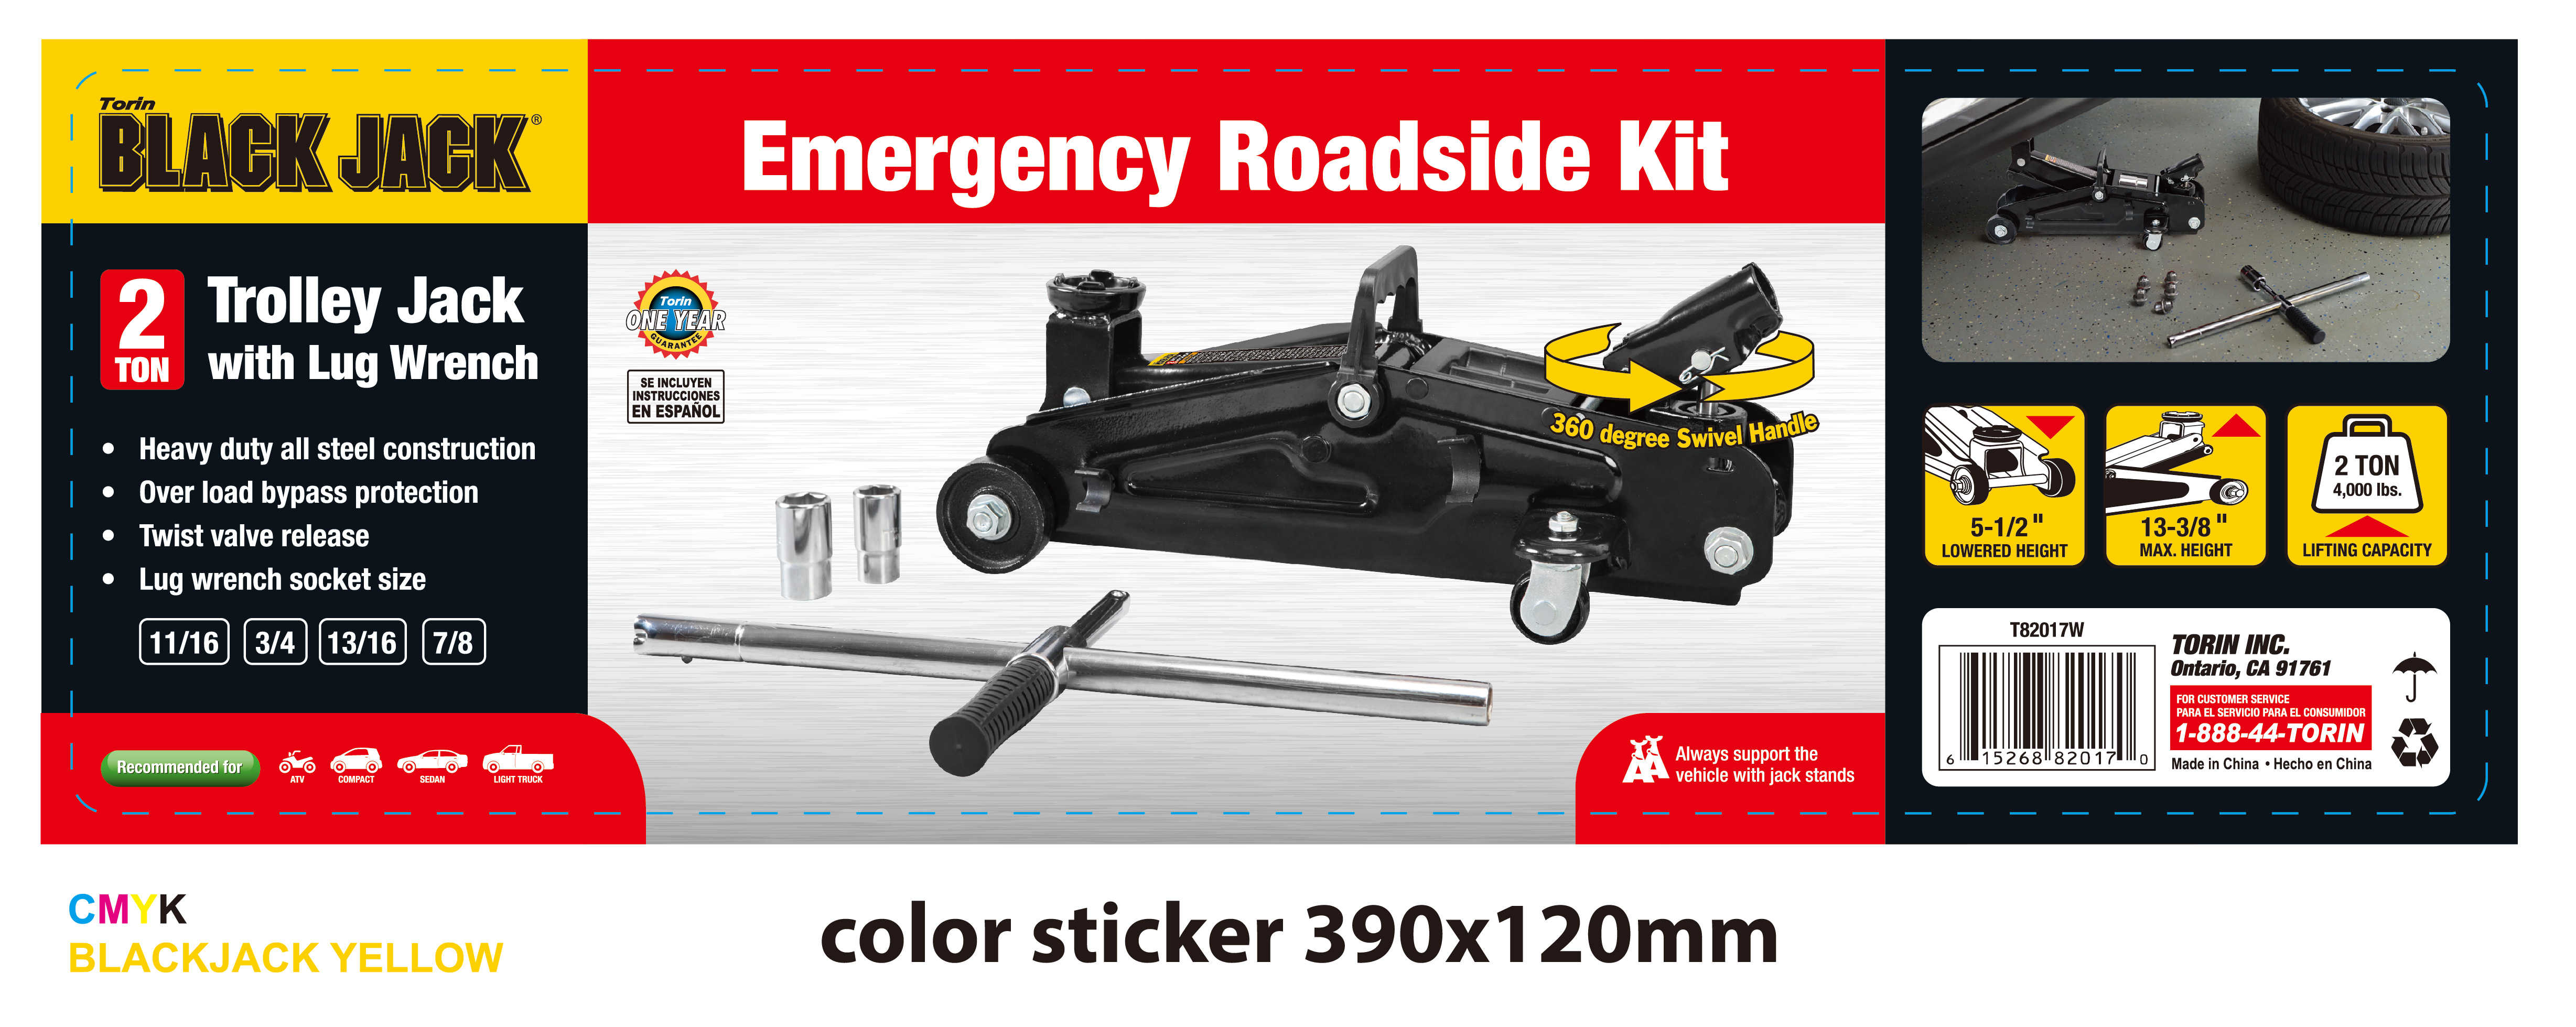 Torin Blackjack Roadside Kit with a 2 Ton Trolley Jack with Lug Wrench